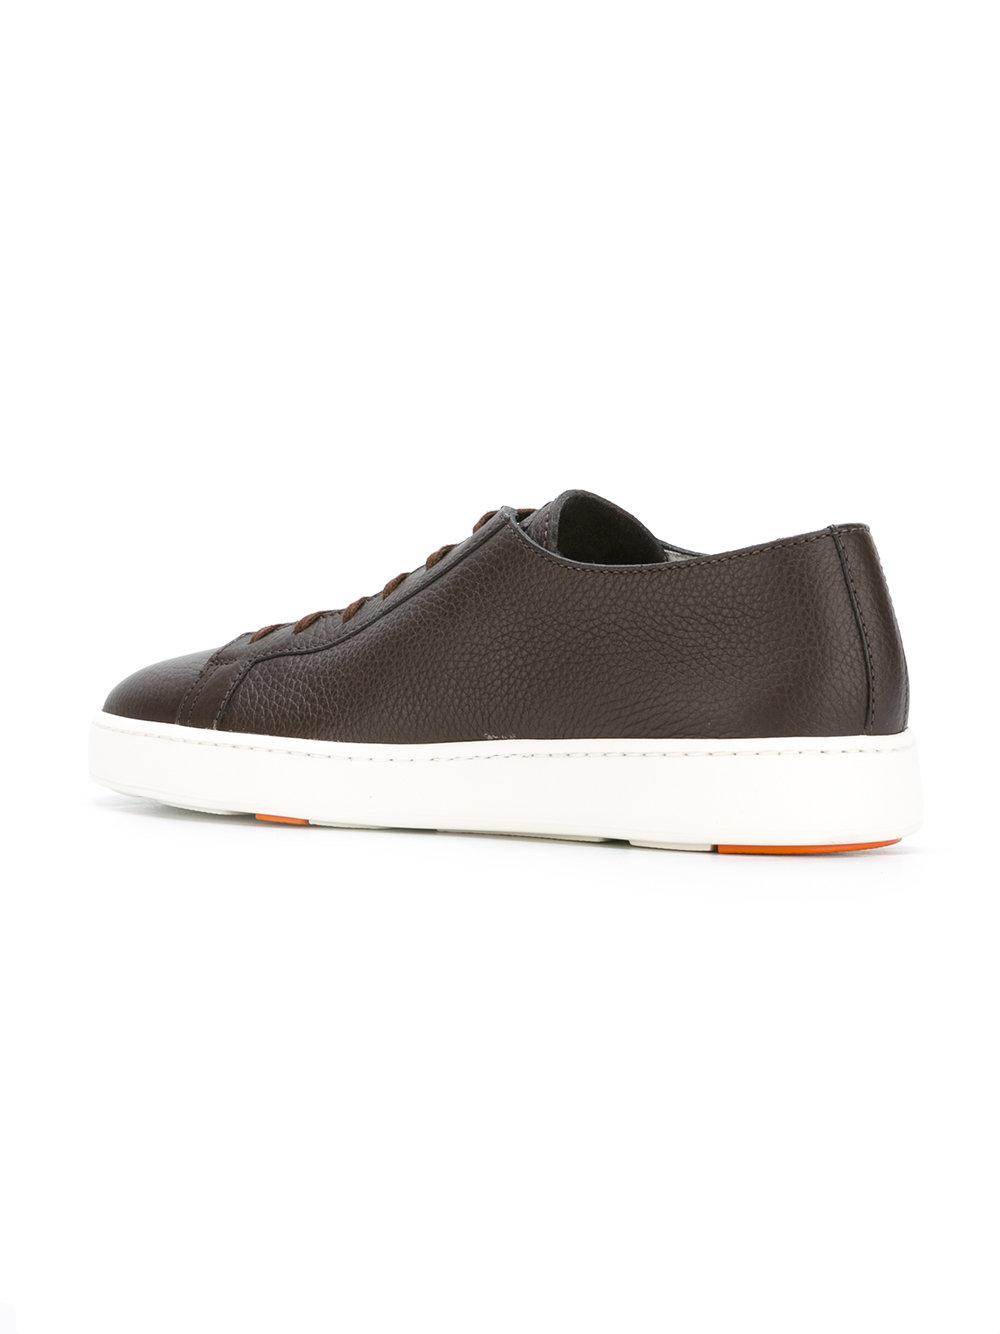 Santoni grained lace up trainers the cheapest cheap pay with visa cheap price outlet WnZw0Xprsp